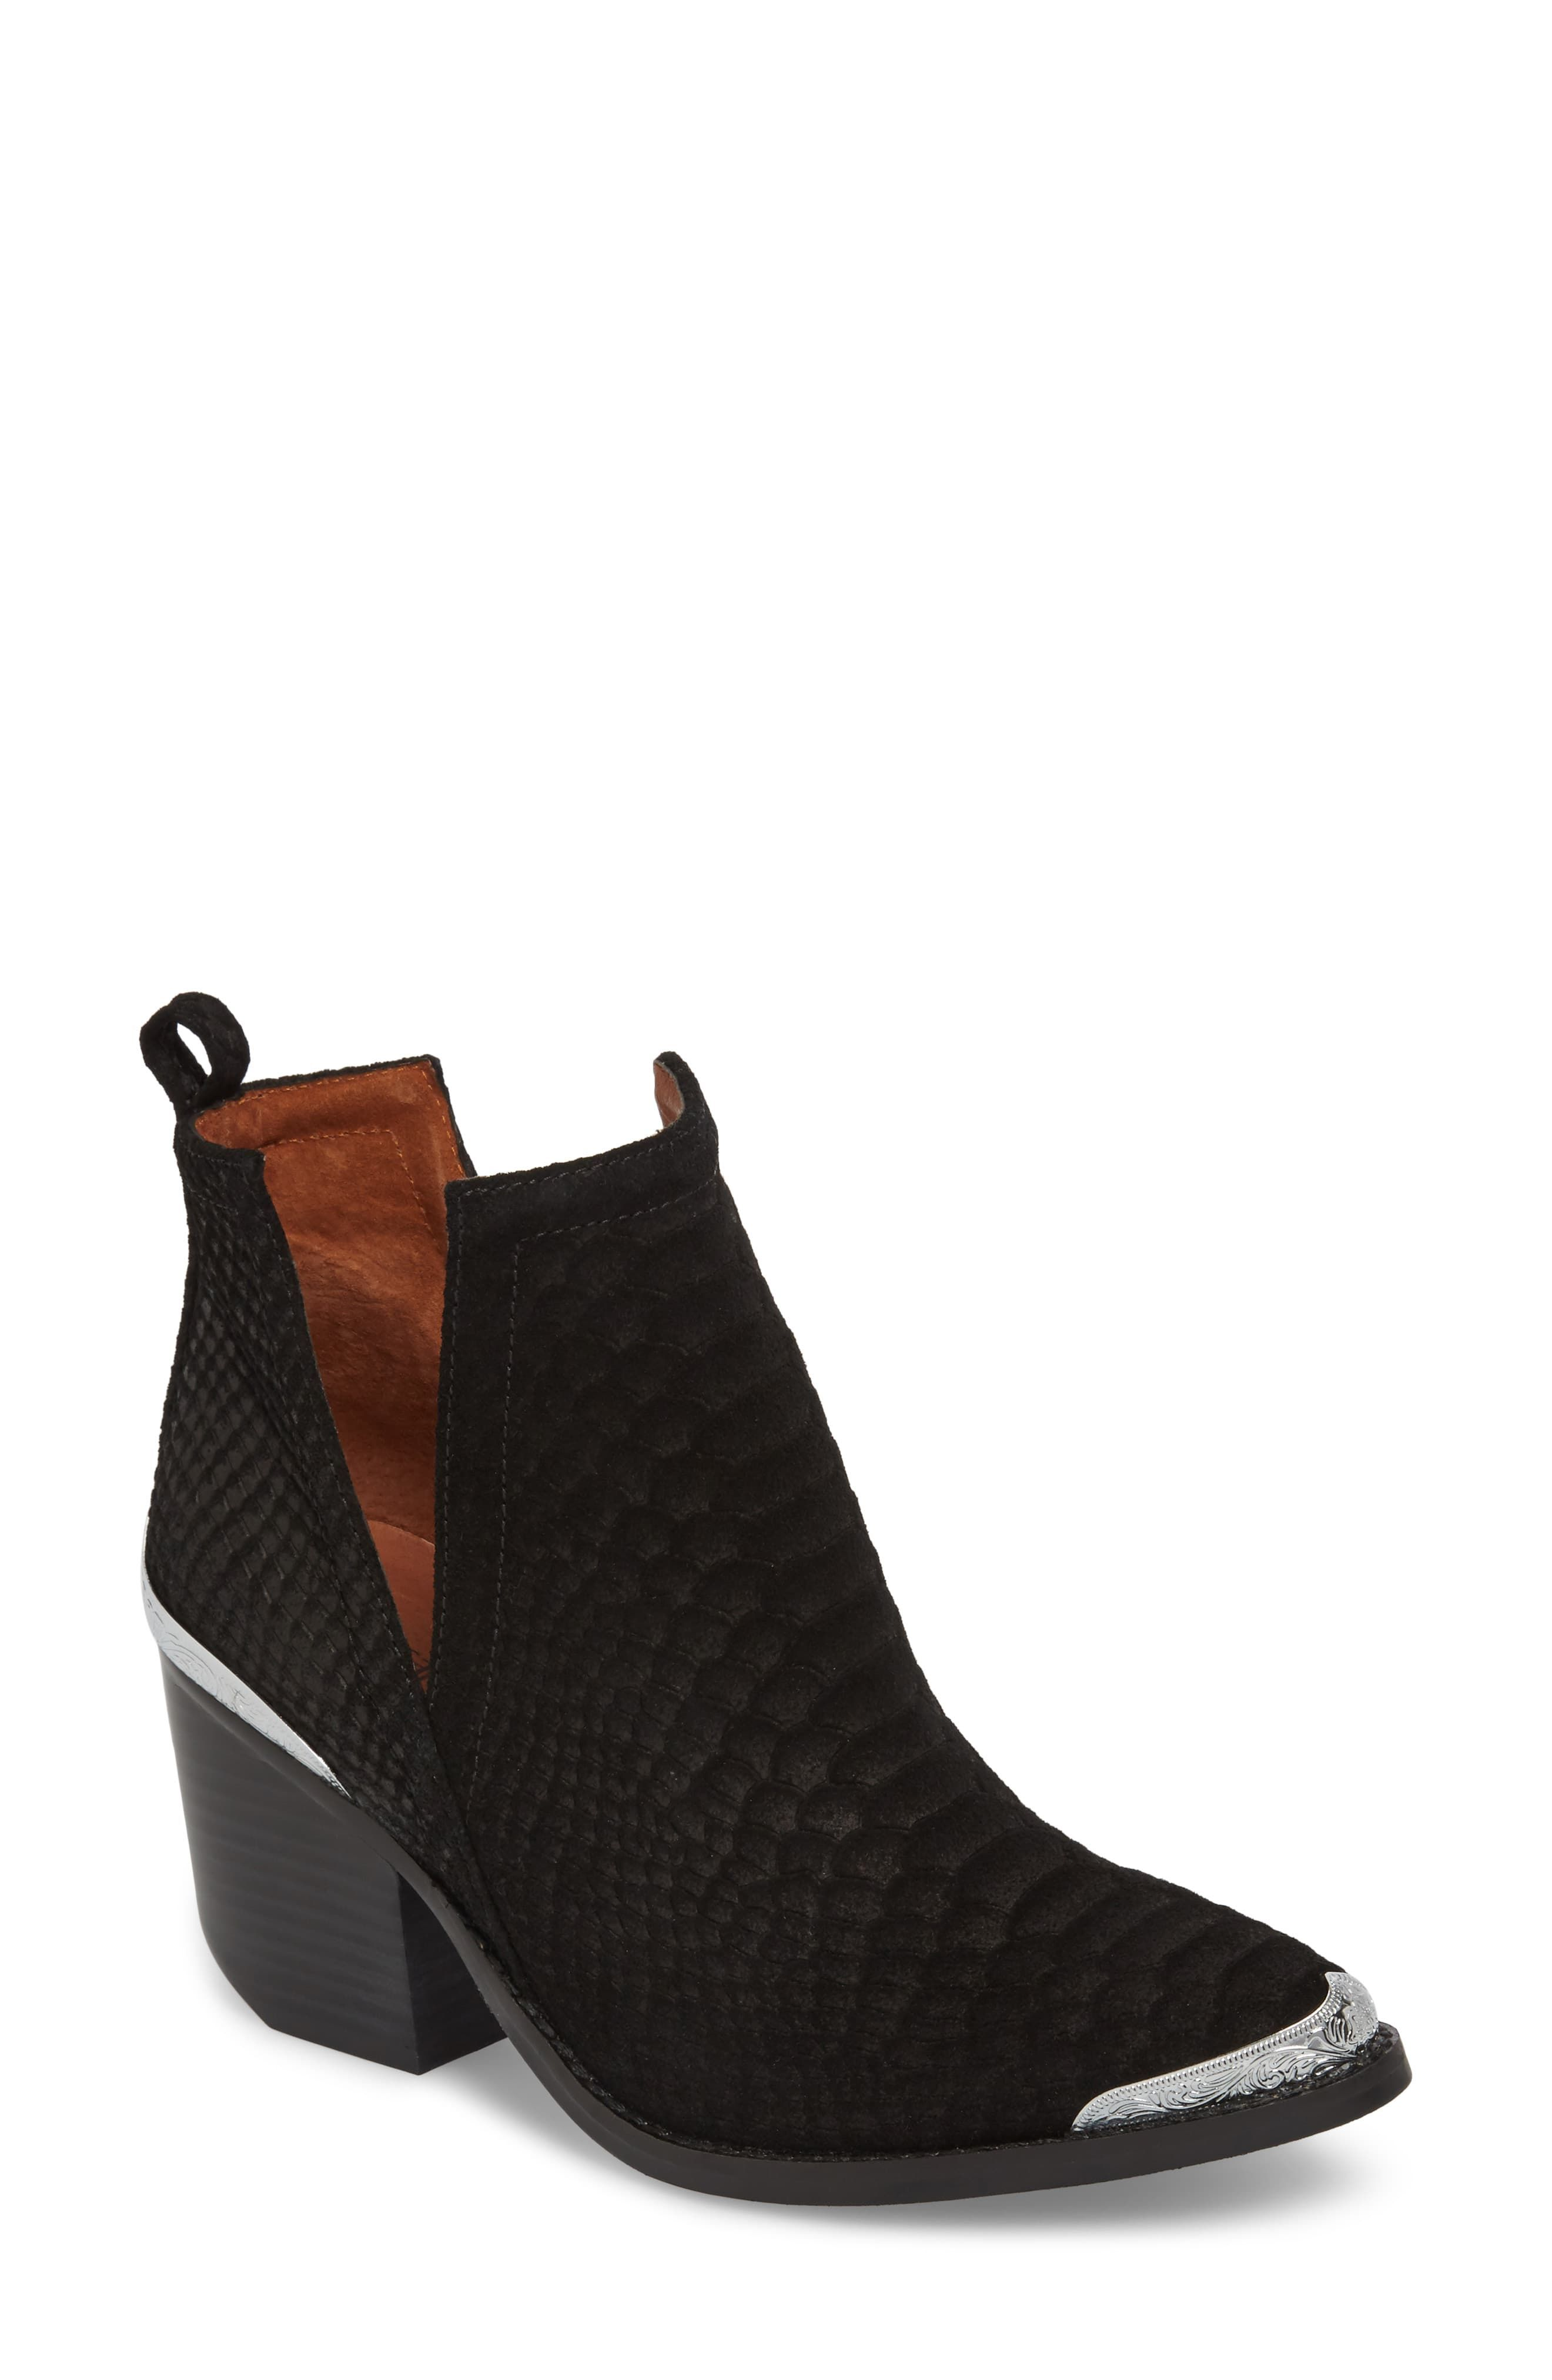 Women's Jeffrey Campbell Cromwell Cutout Western Boot, Size 6.5 M - Black #countryconcertoutfit